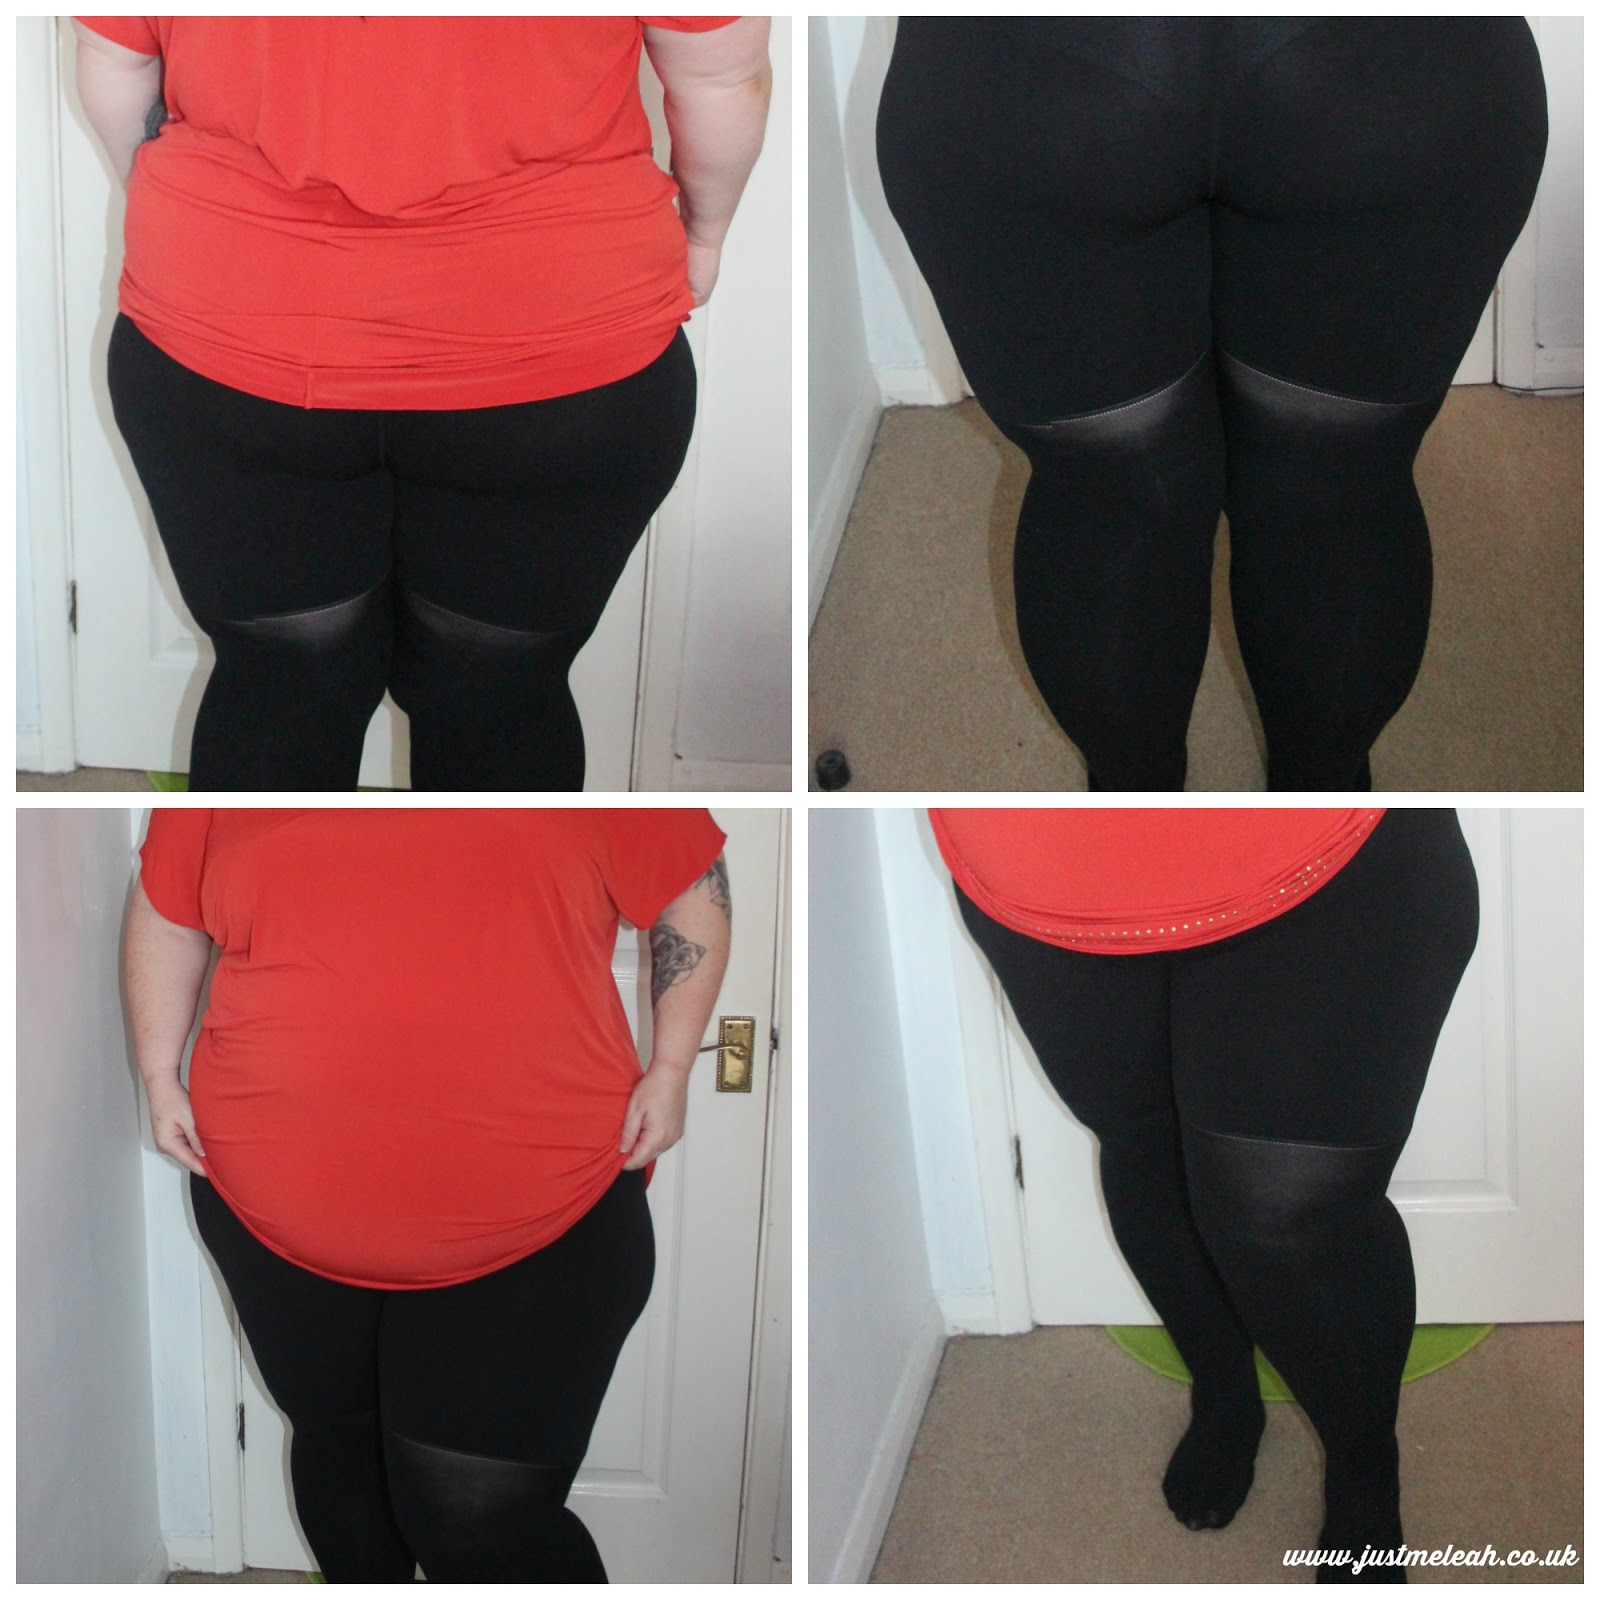 BIG BLOOMERS COMPANY PLUS SIZE TIGHTS IN 180 DENIER